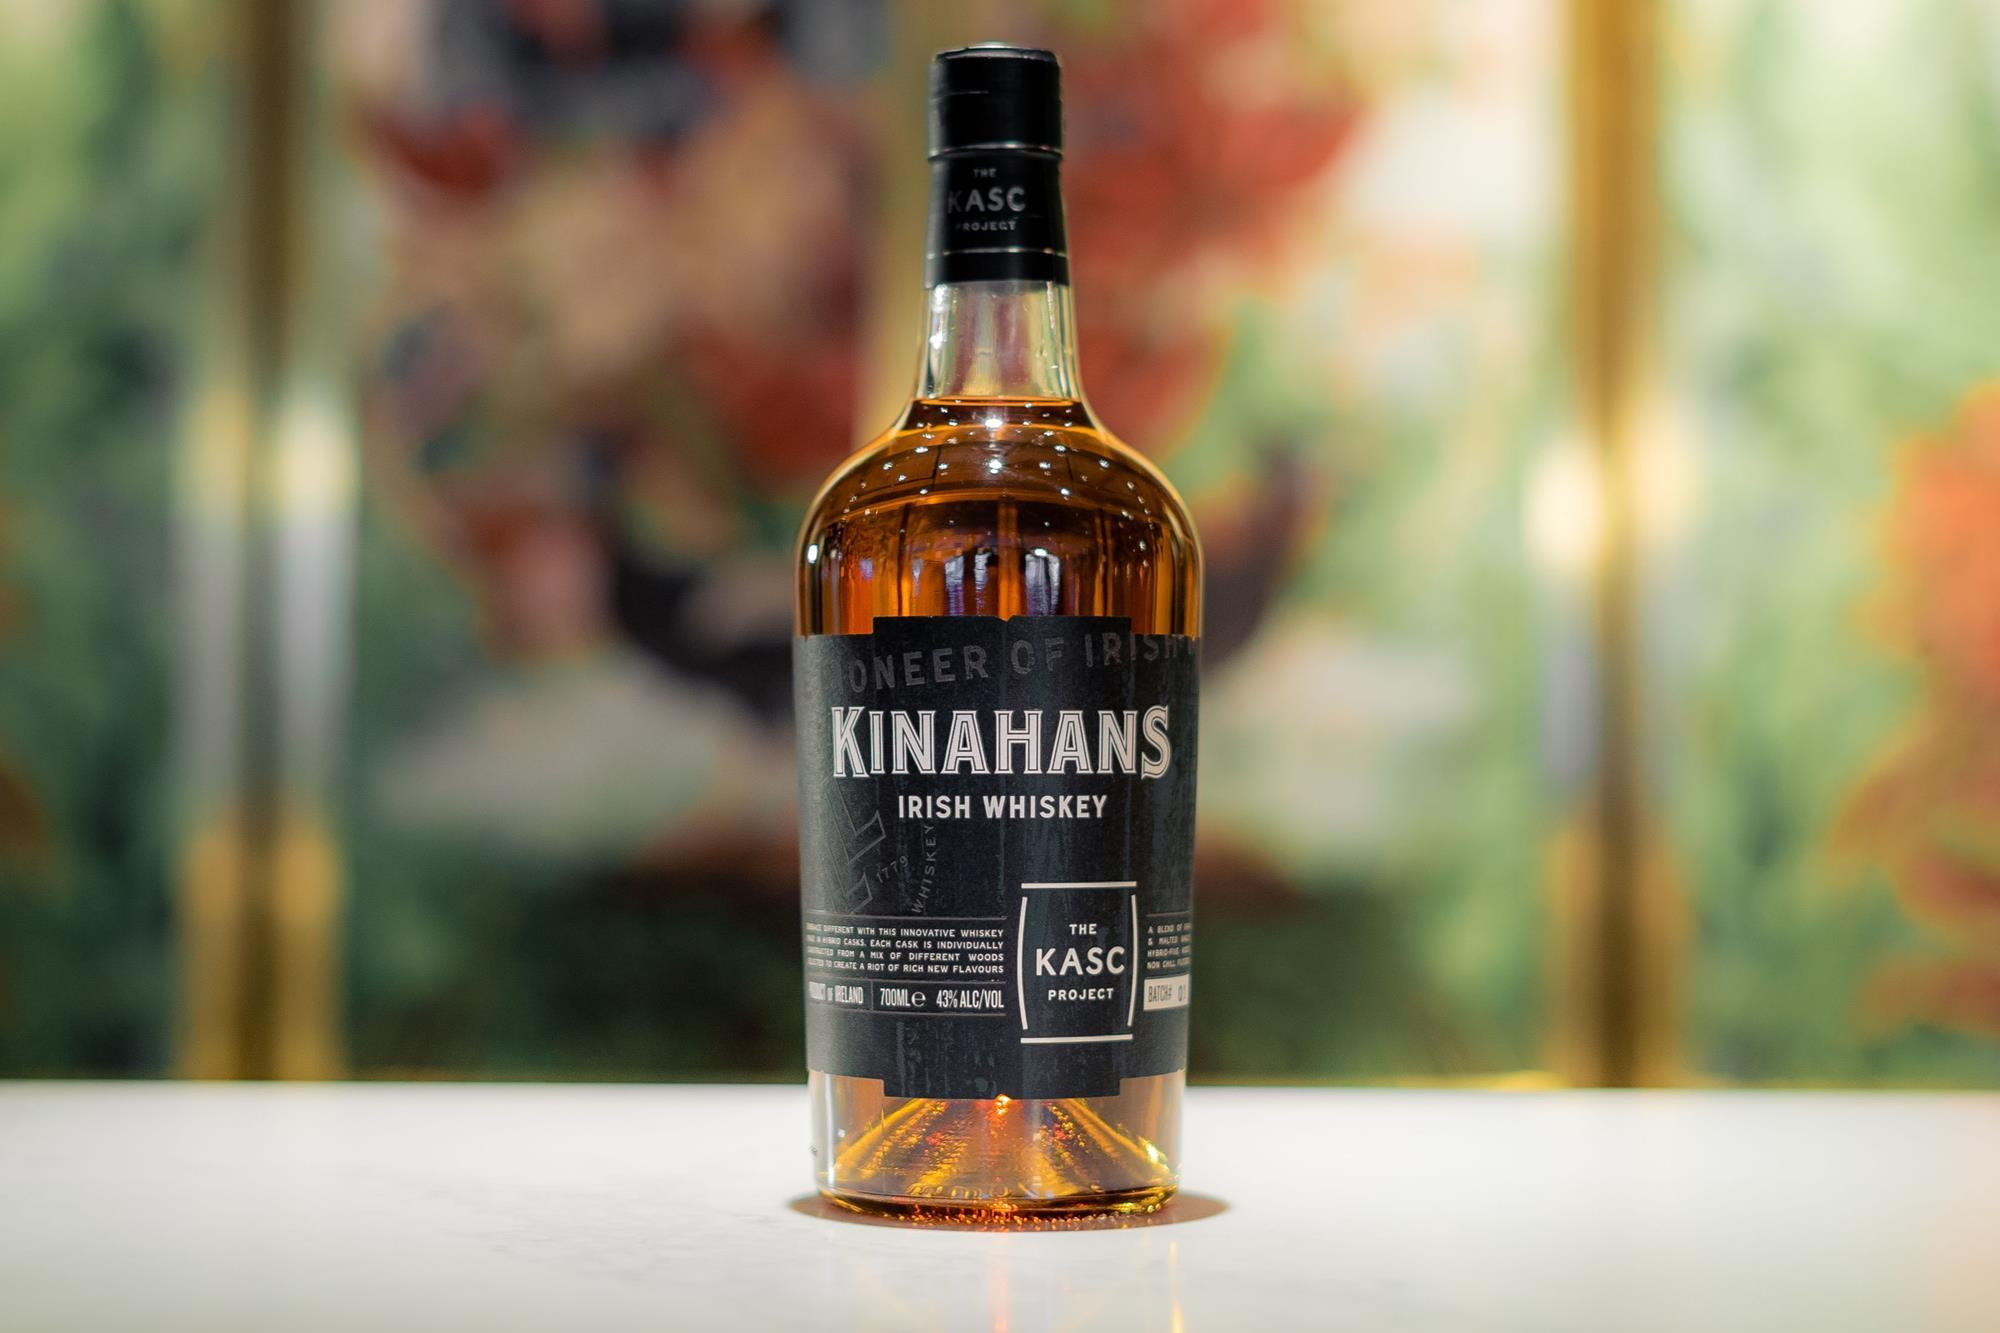 Kinahan's launches 'hybrid' The Kasc Project whiskey | News | The ...